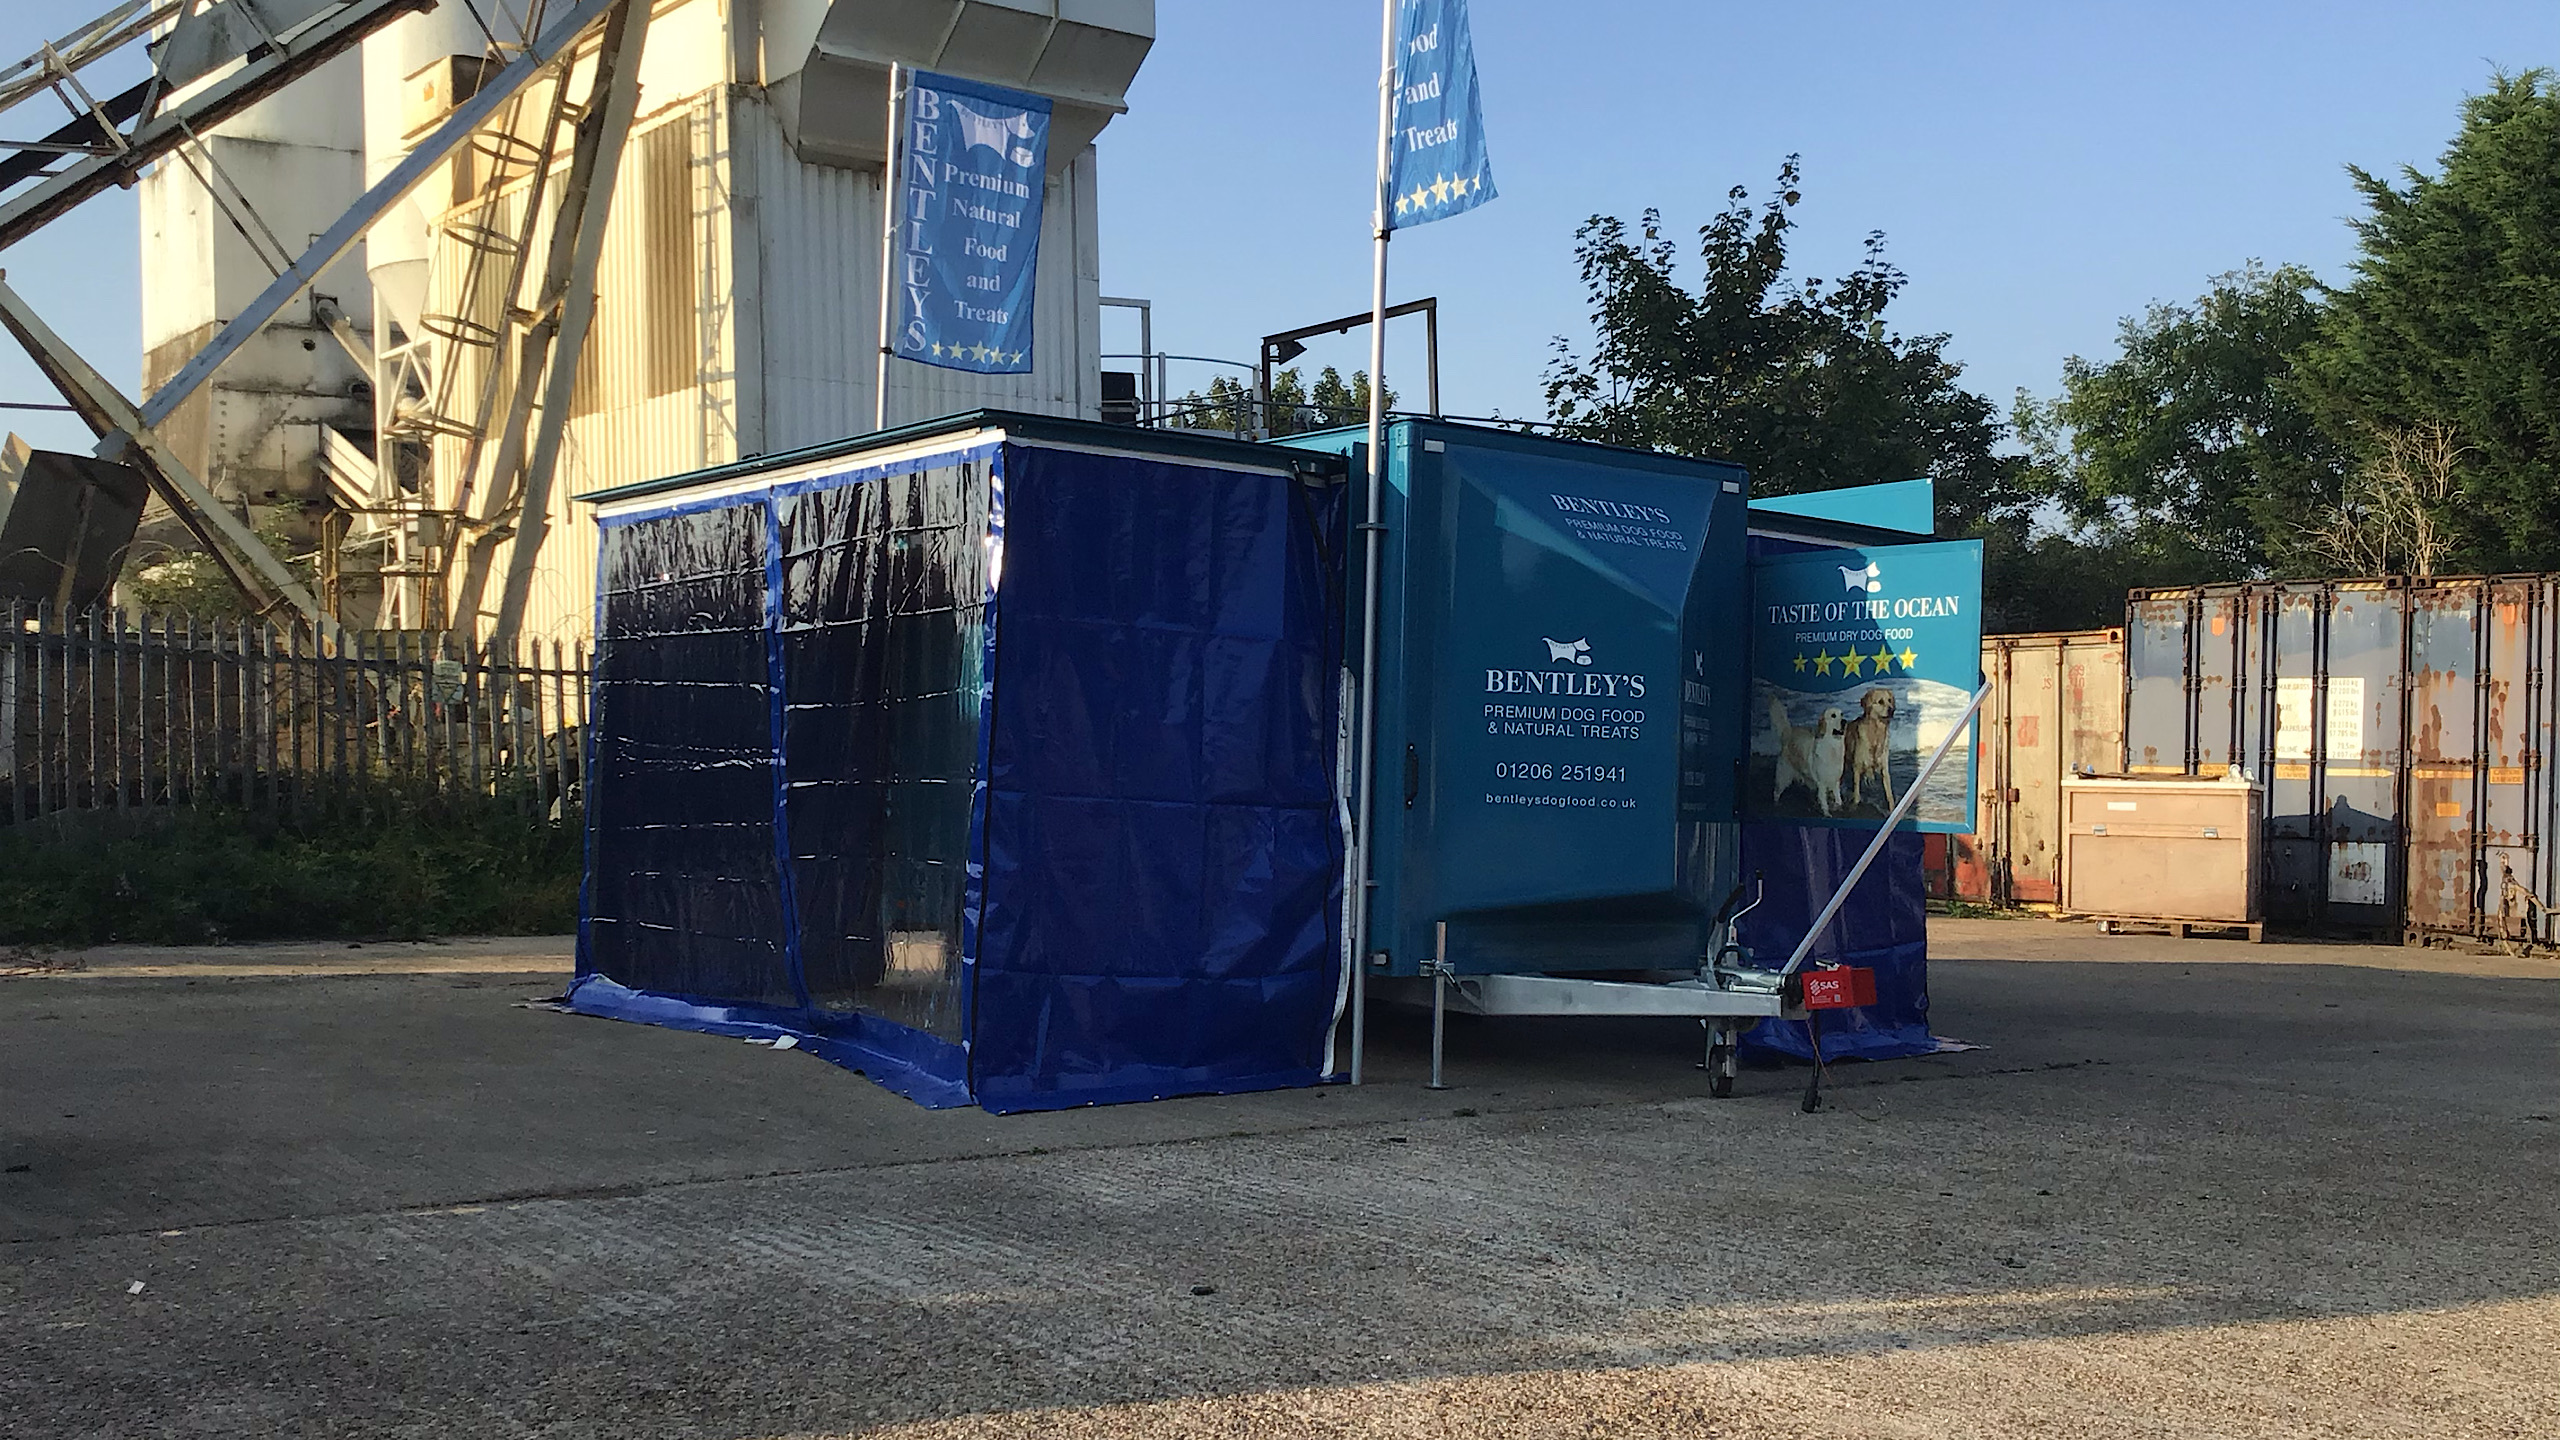 exhibition trailers marketing events mobile